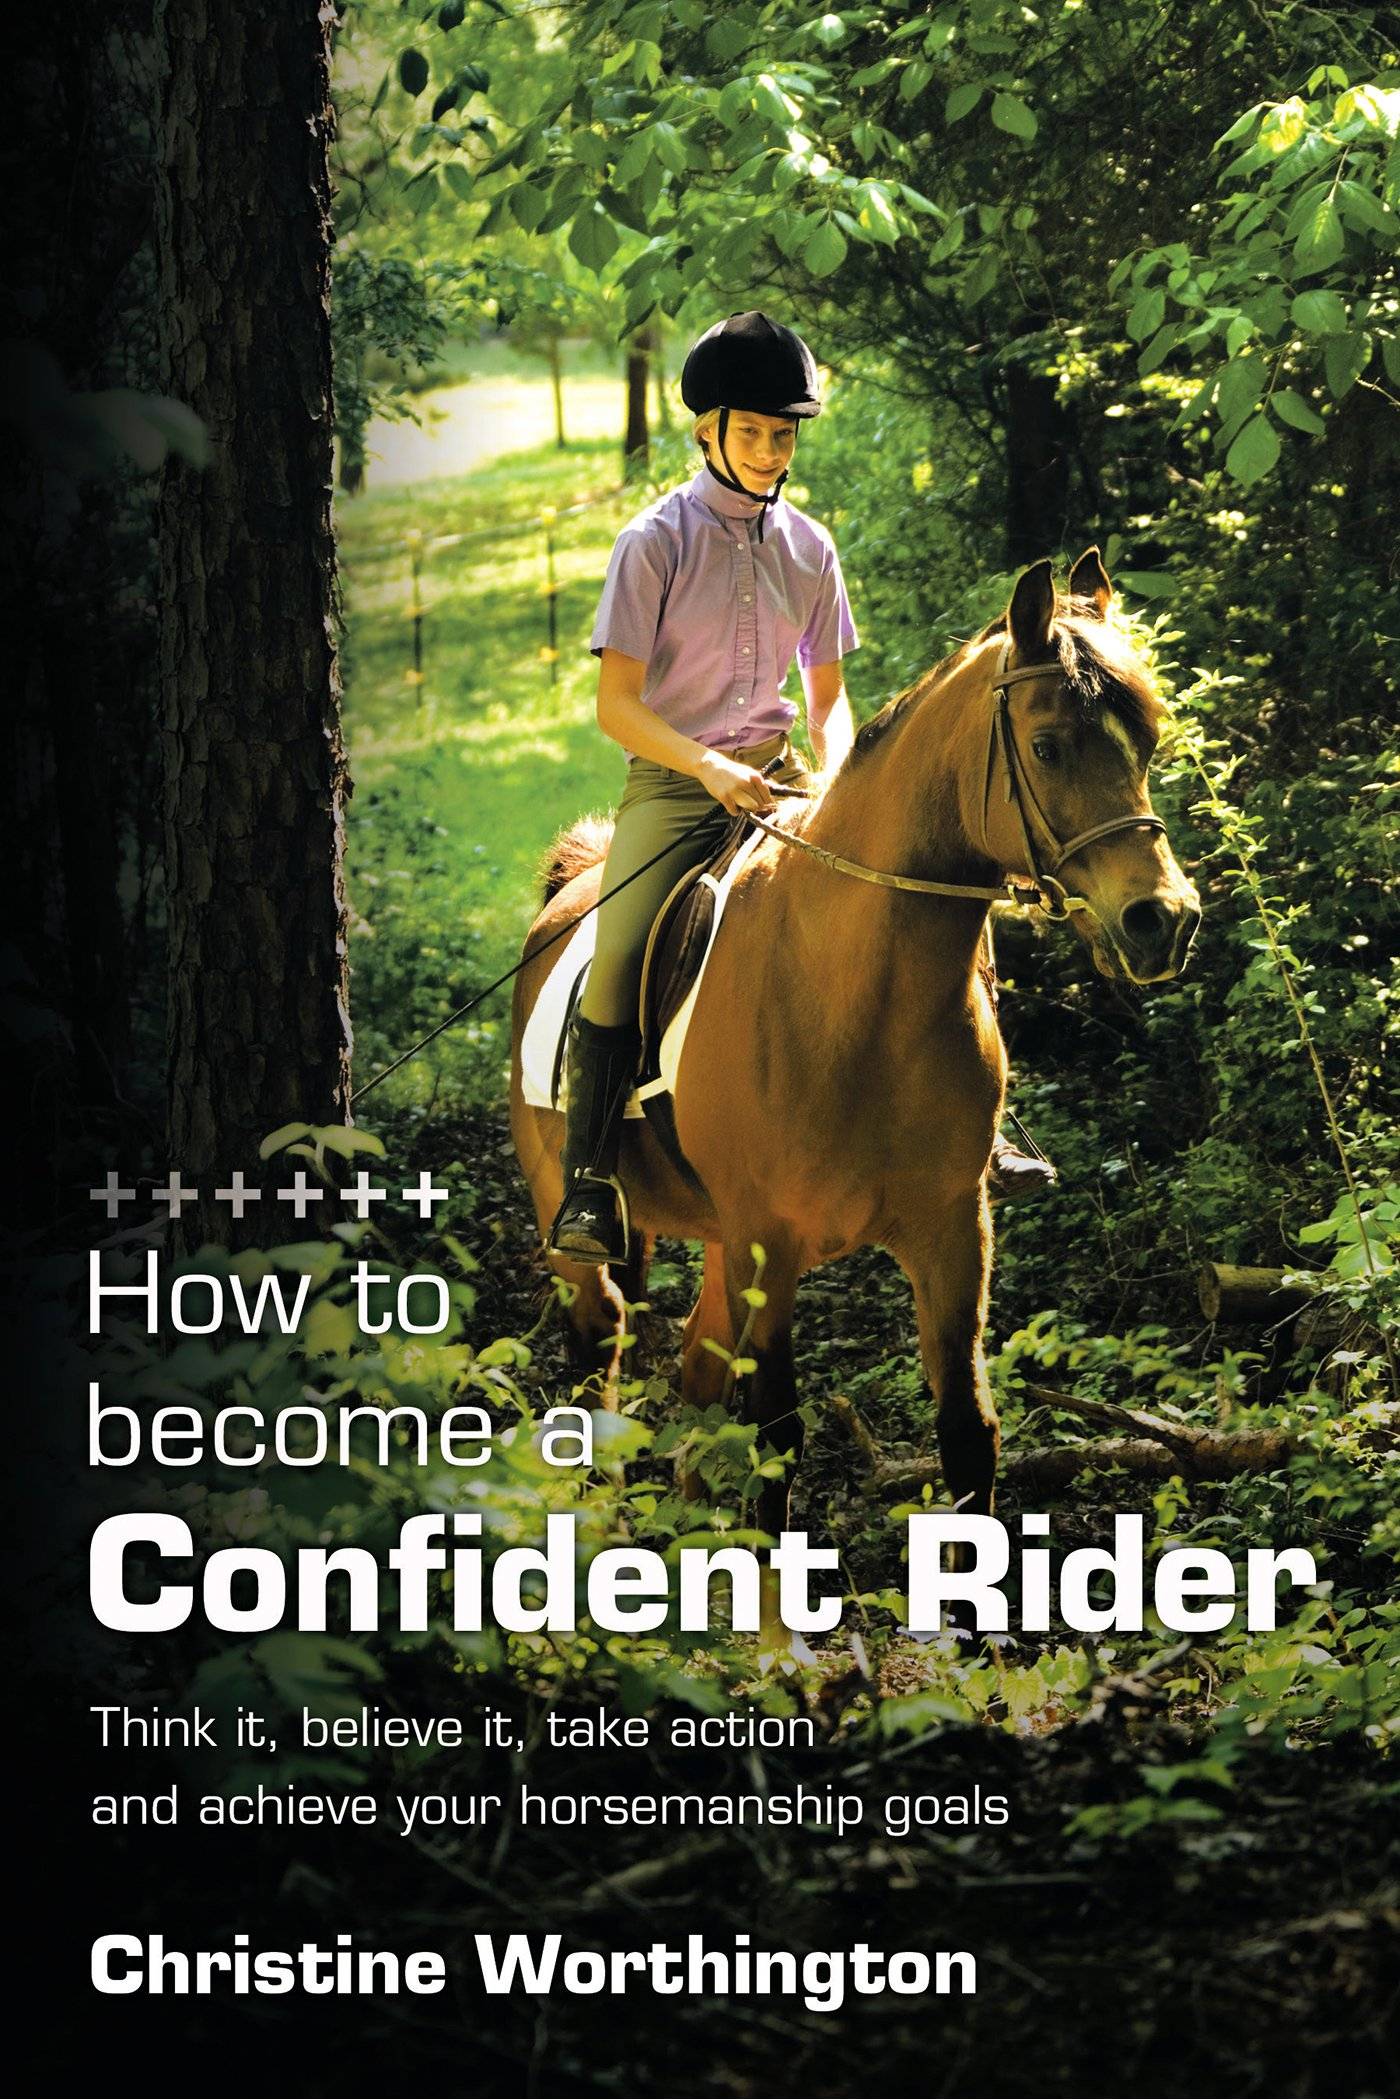 Image OfHow To Become A Confident Rider: Think It, Believe It, Take Action And Achieve Your Horsemanship Goals (English Edition)